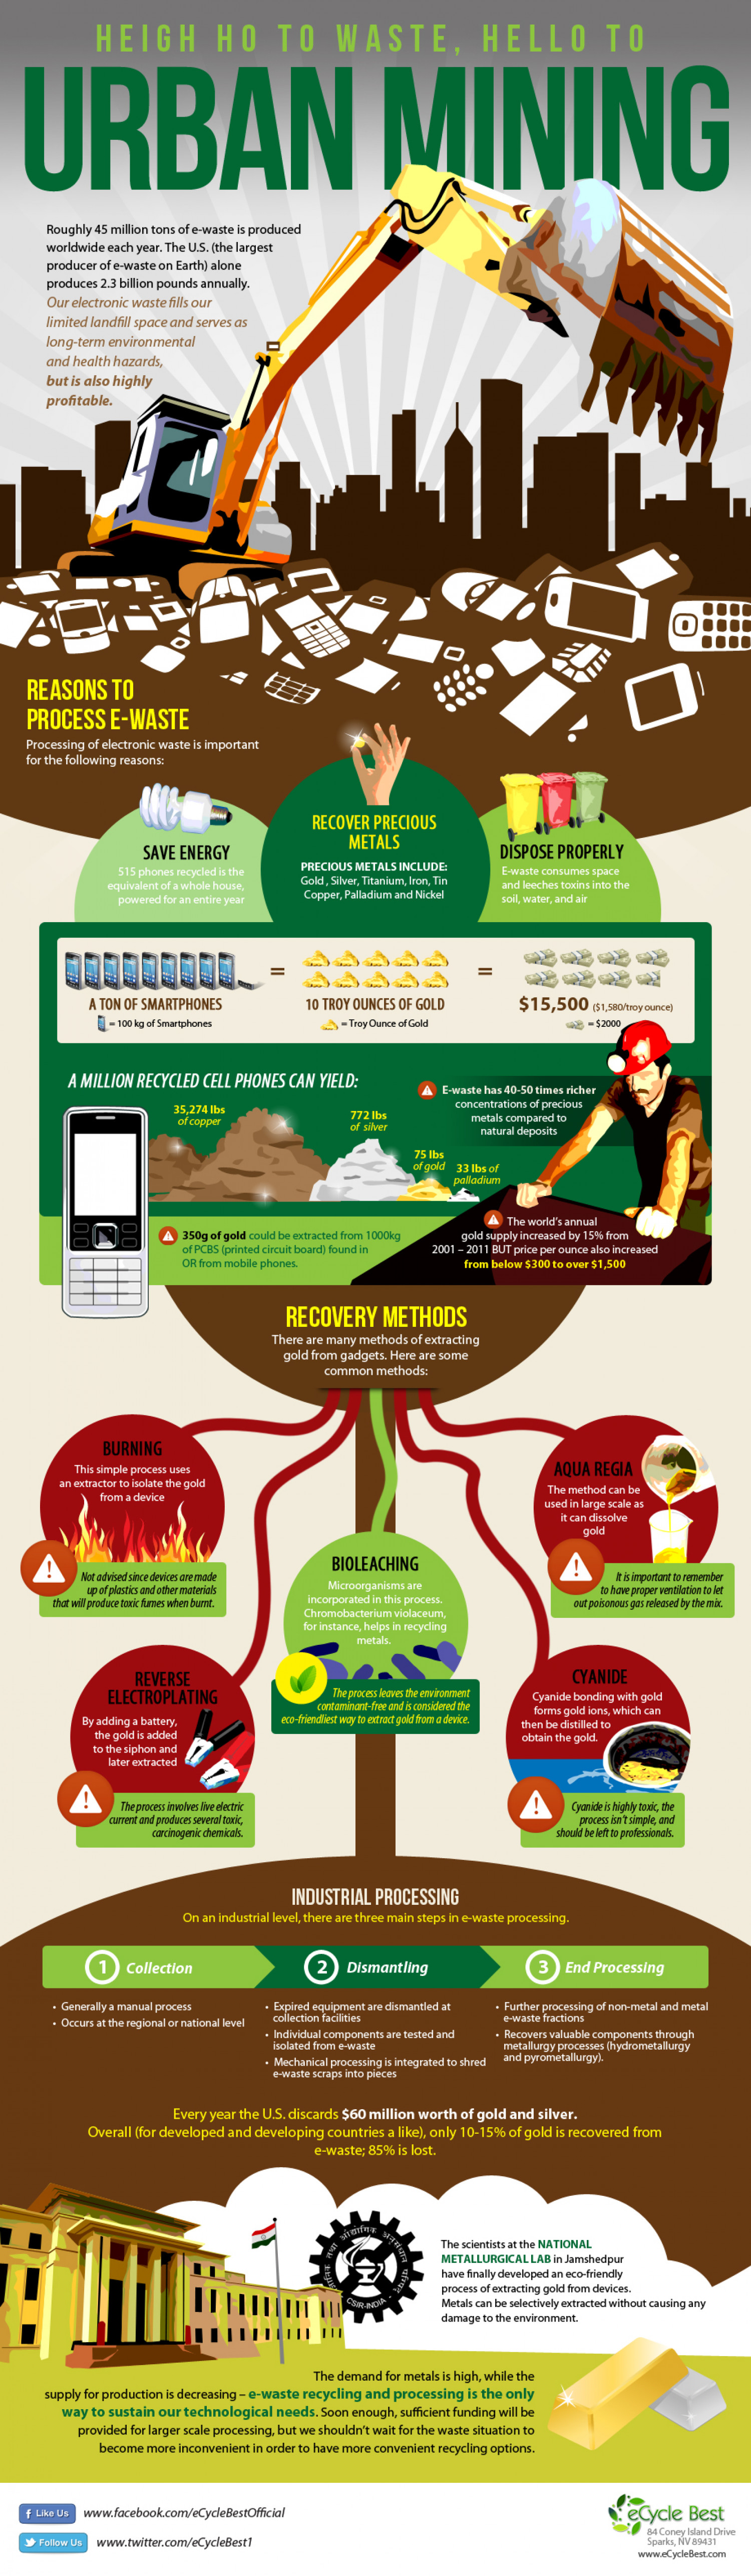 Heigh Ho To Waste, Hello To Urban Mining Infographic